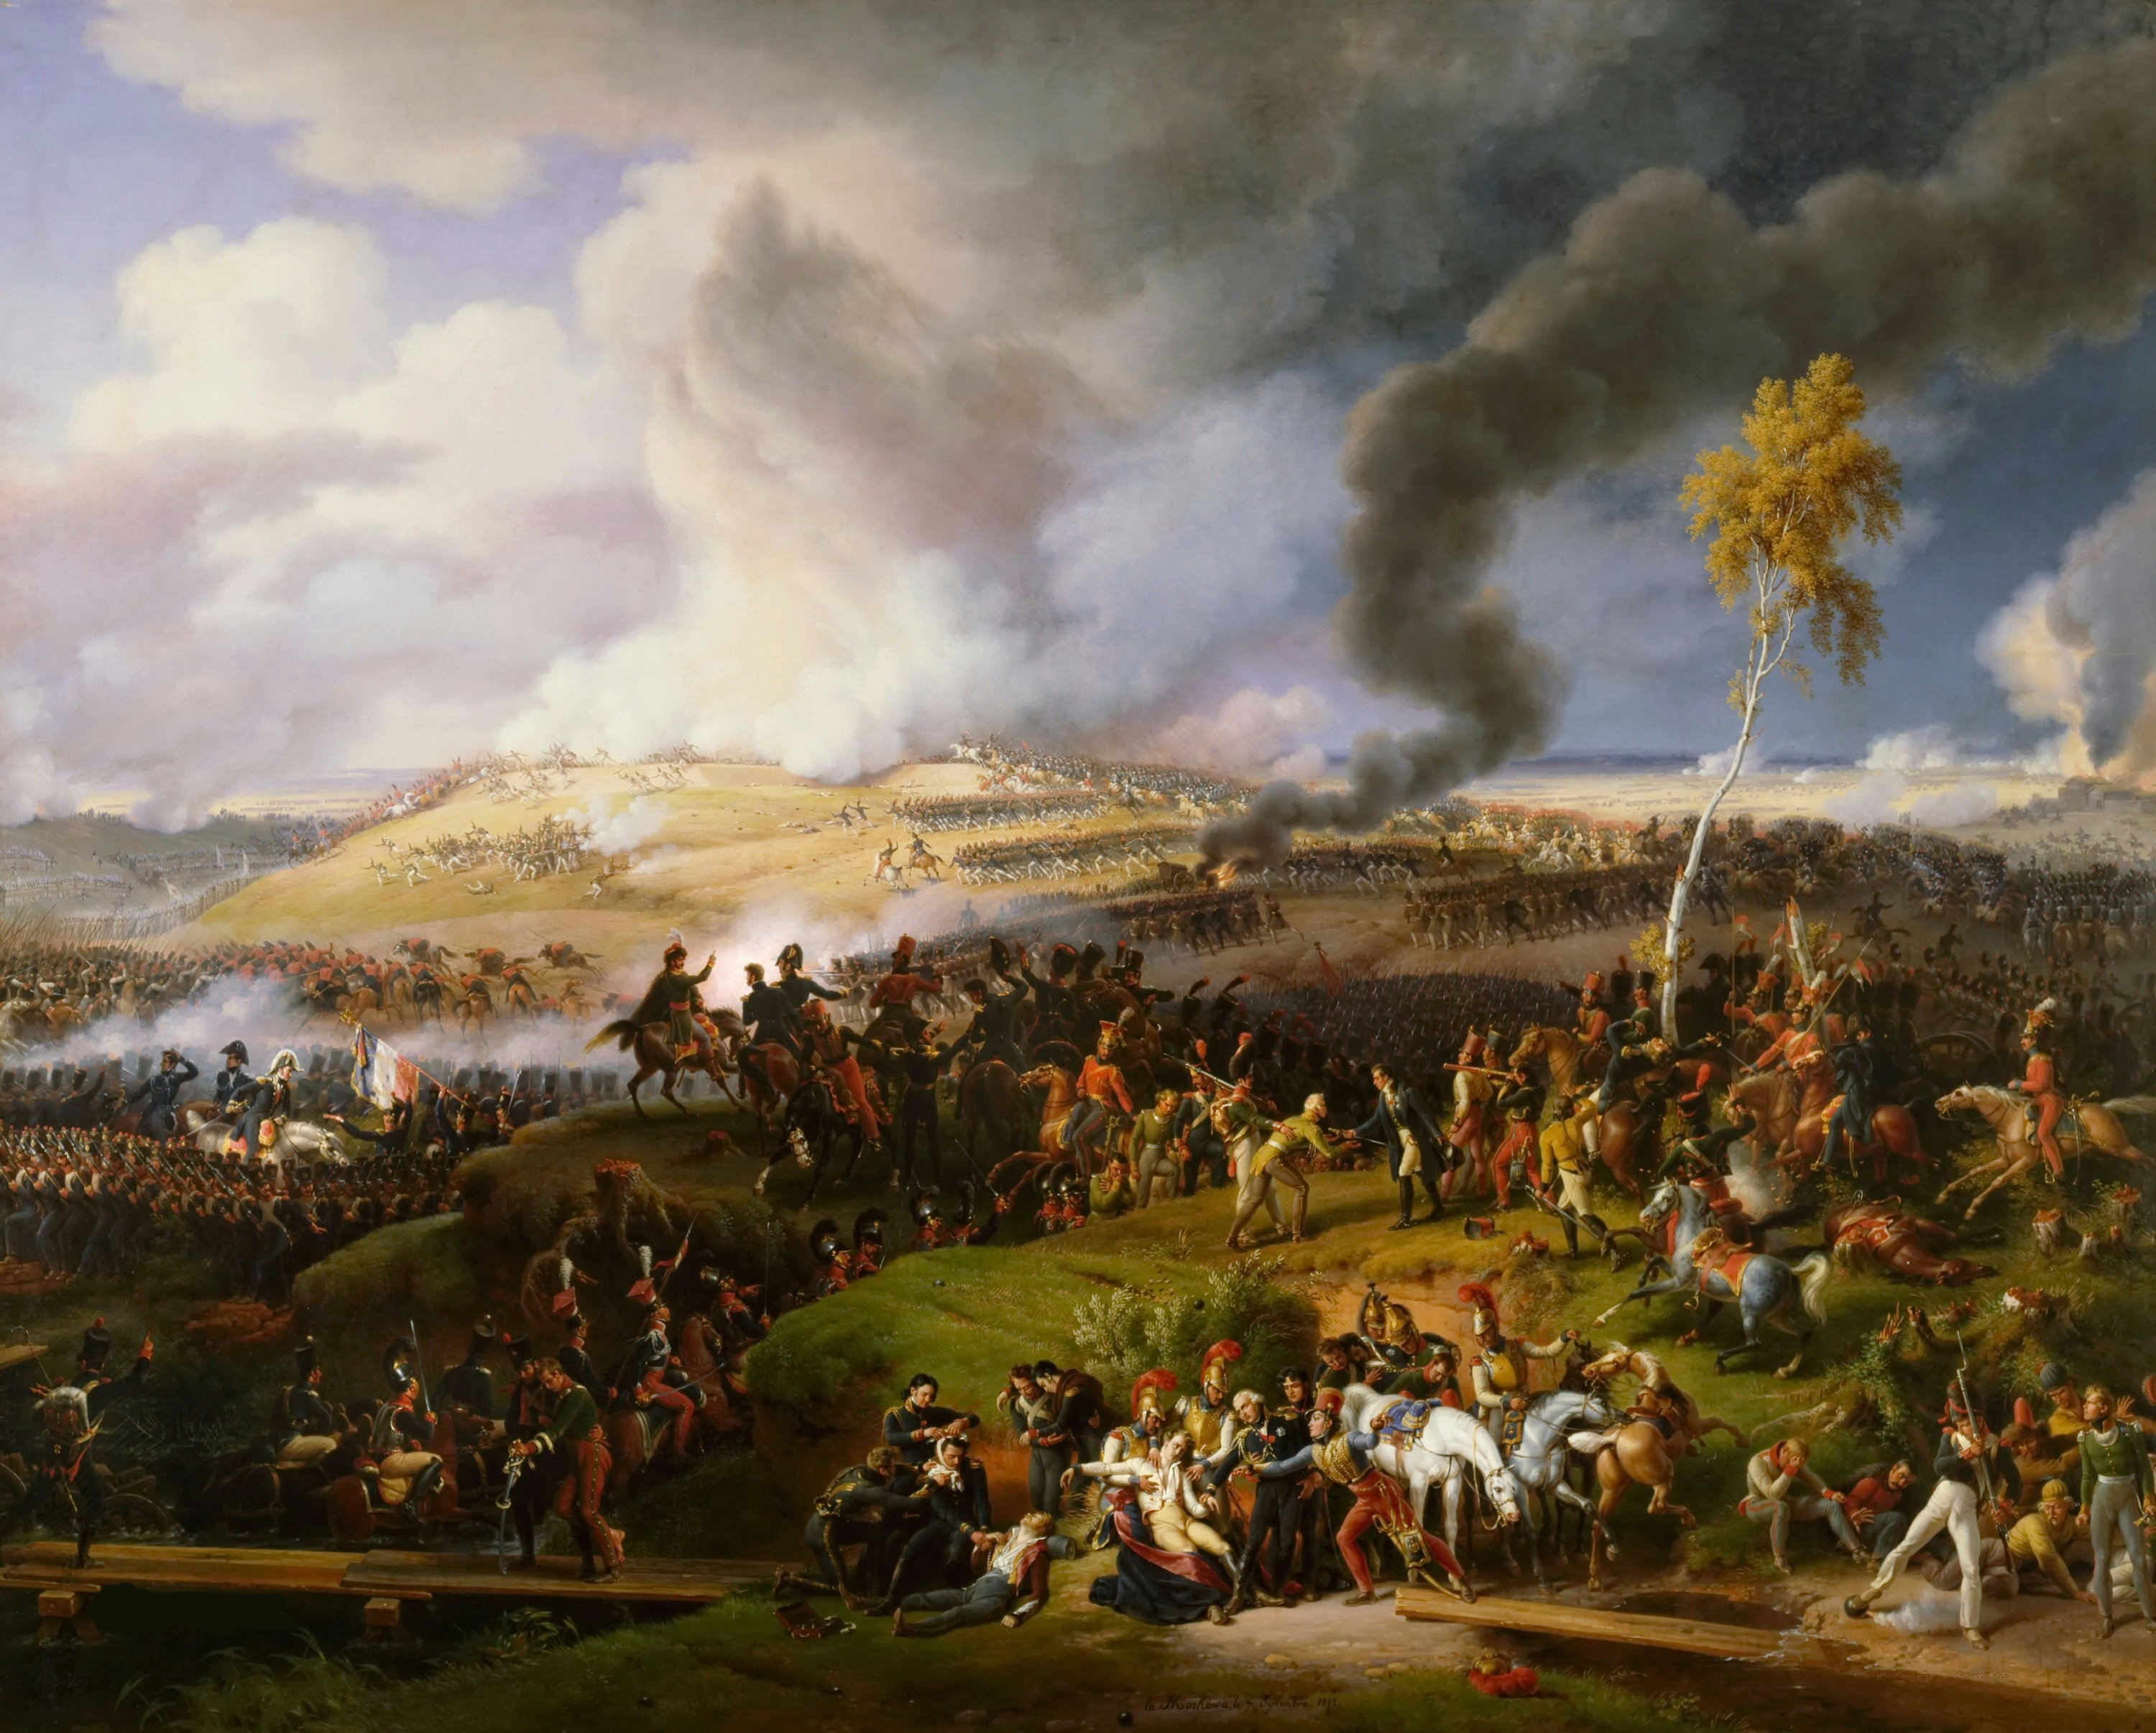 http://upload.wikimedia.org/wikipedia/commons/4/43/Battle_of_Borodino.jpg